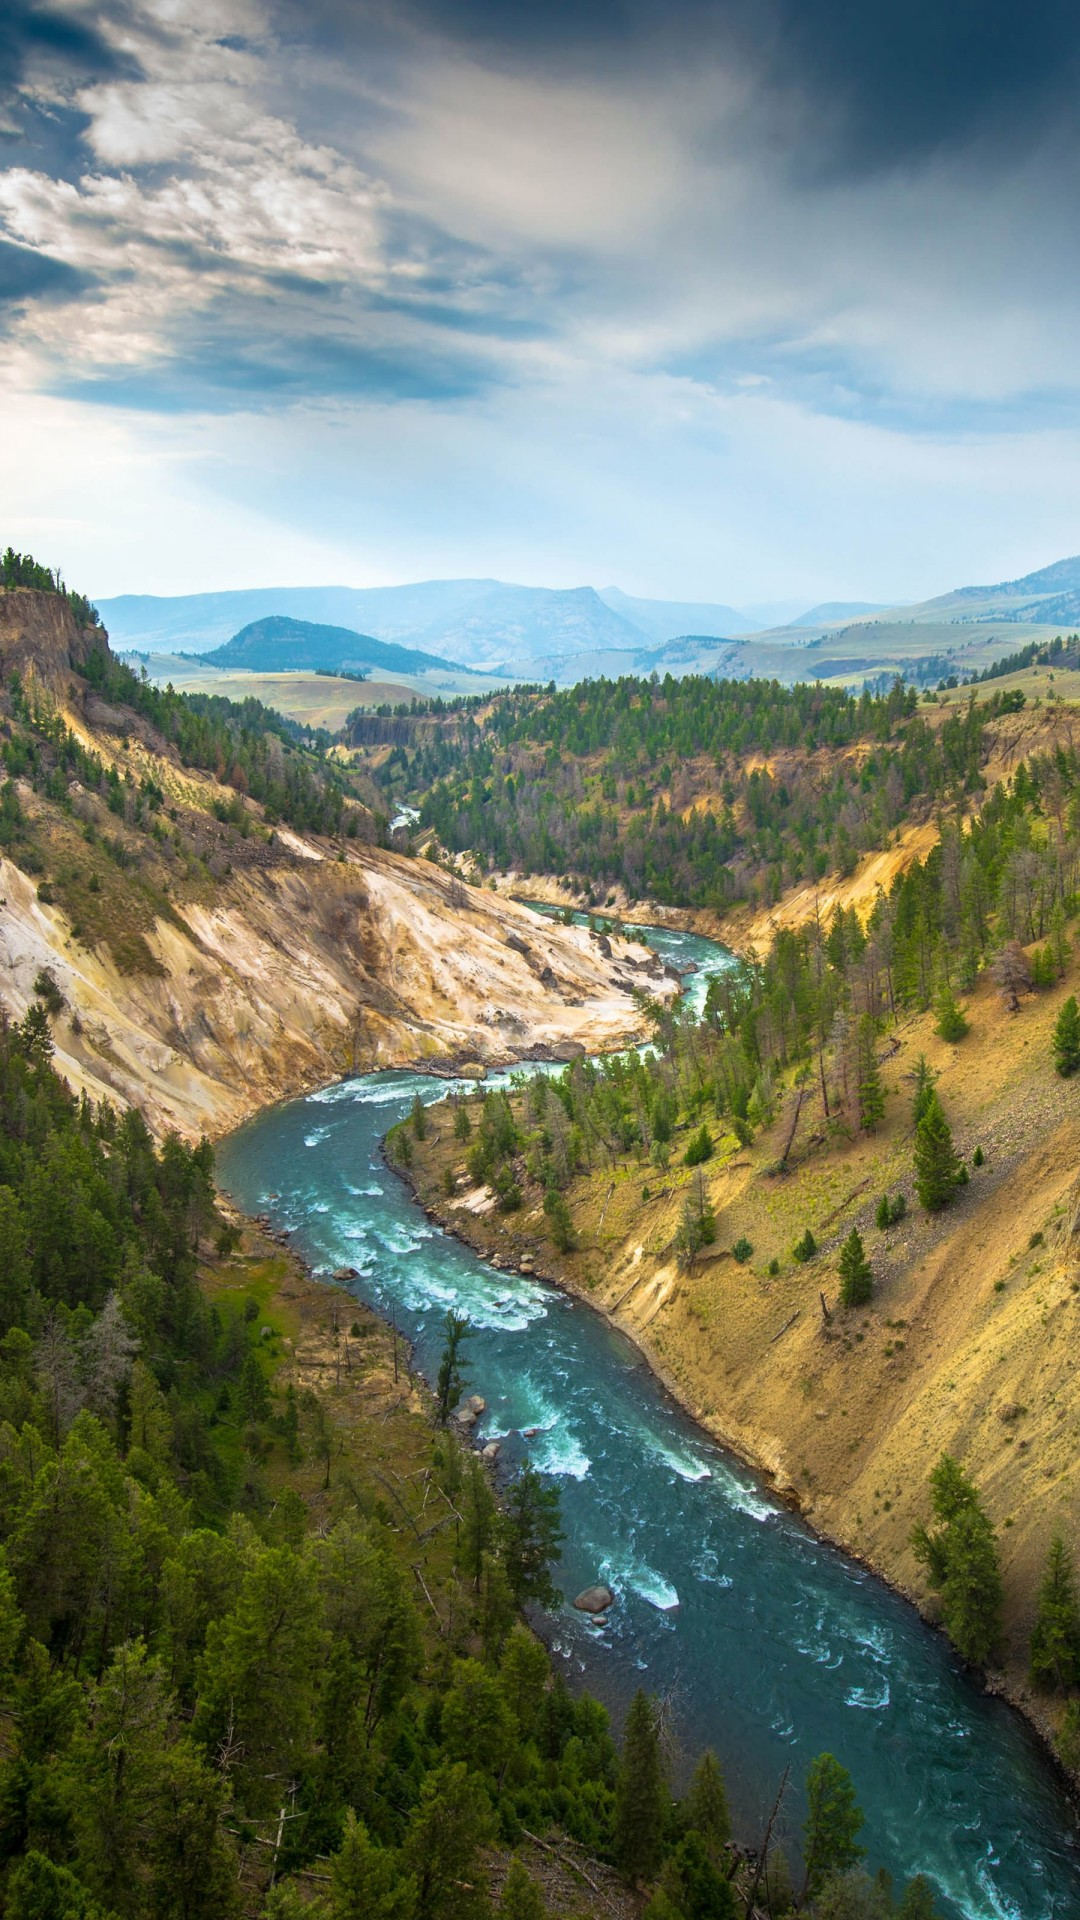 The River, Grand Canyon of Yellowstone National Park, USA Wallpaper for Motorola Moto X